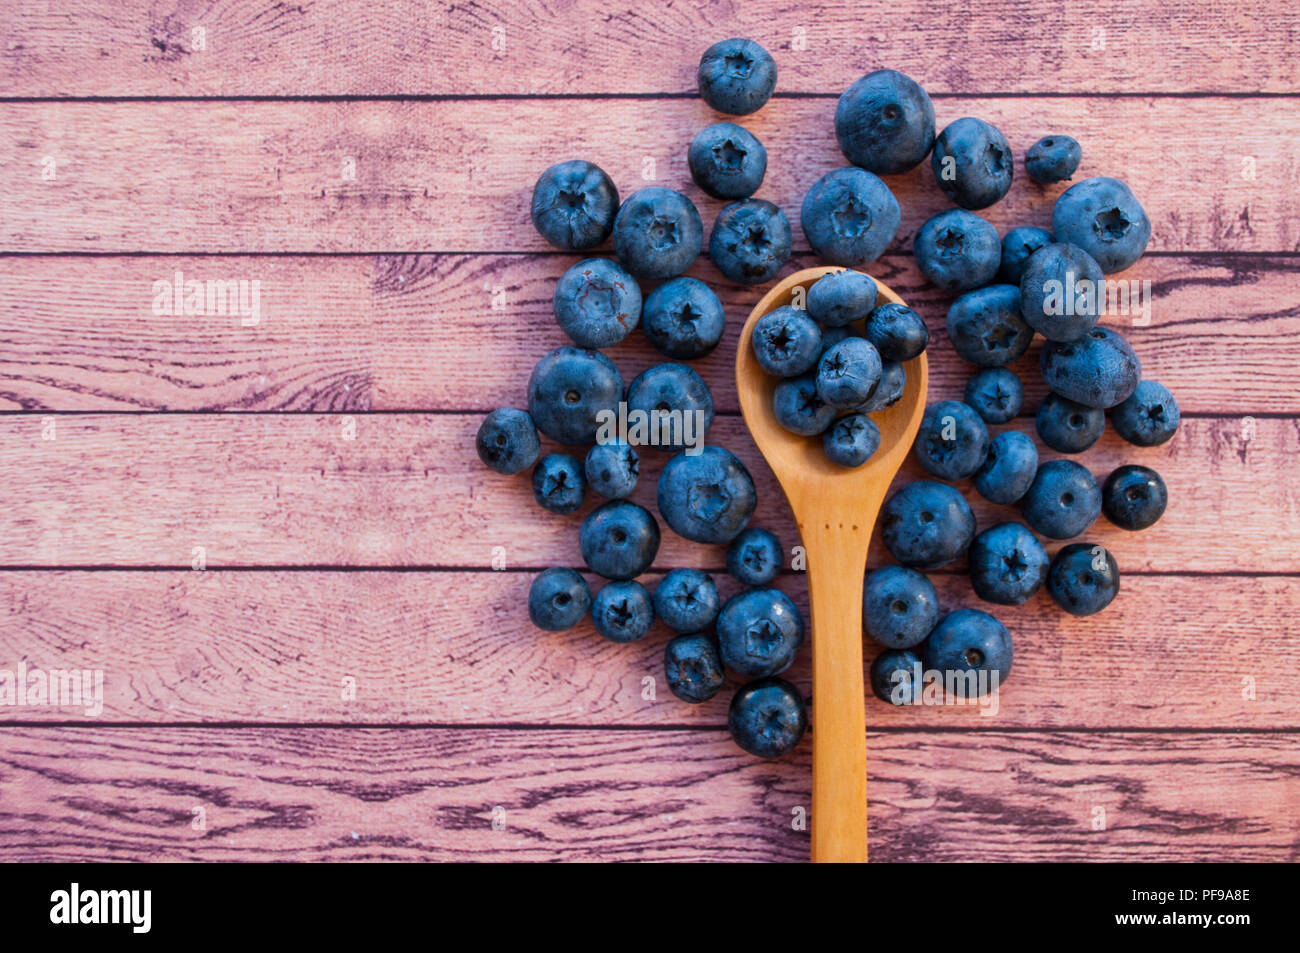 Fresh and juicy blueberries in a wooden spoon on wooden table with copyspace. Healthy food concept. - Stock Image